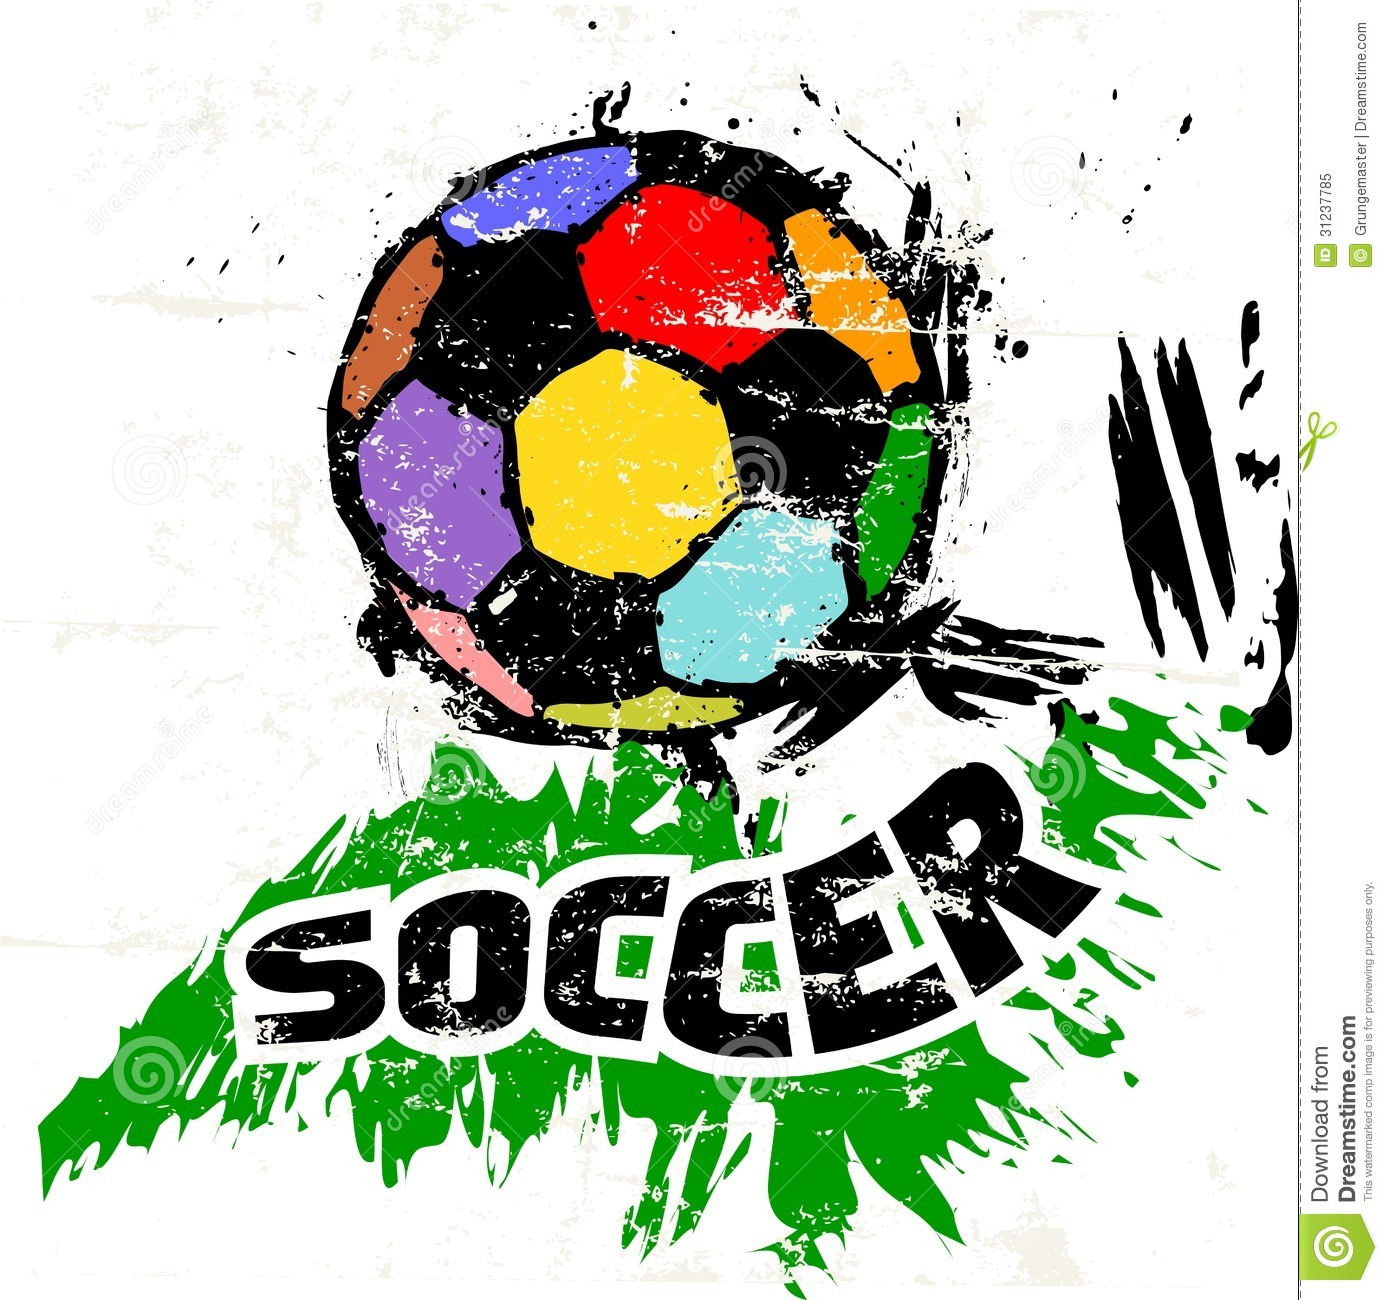 soccer illustration royalty free stock photo